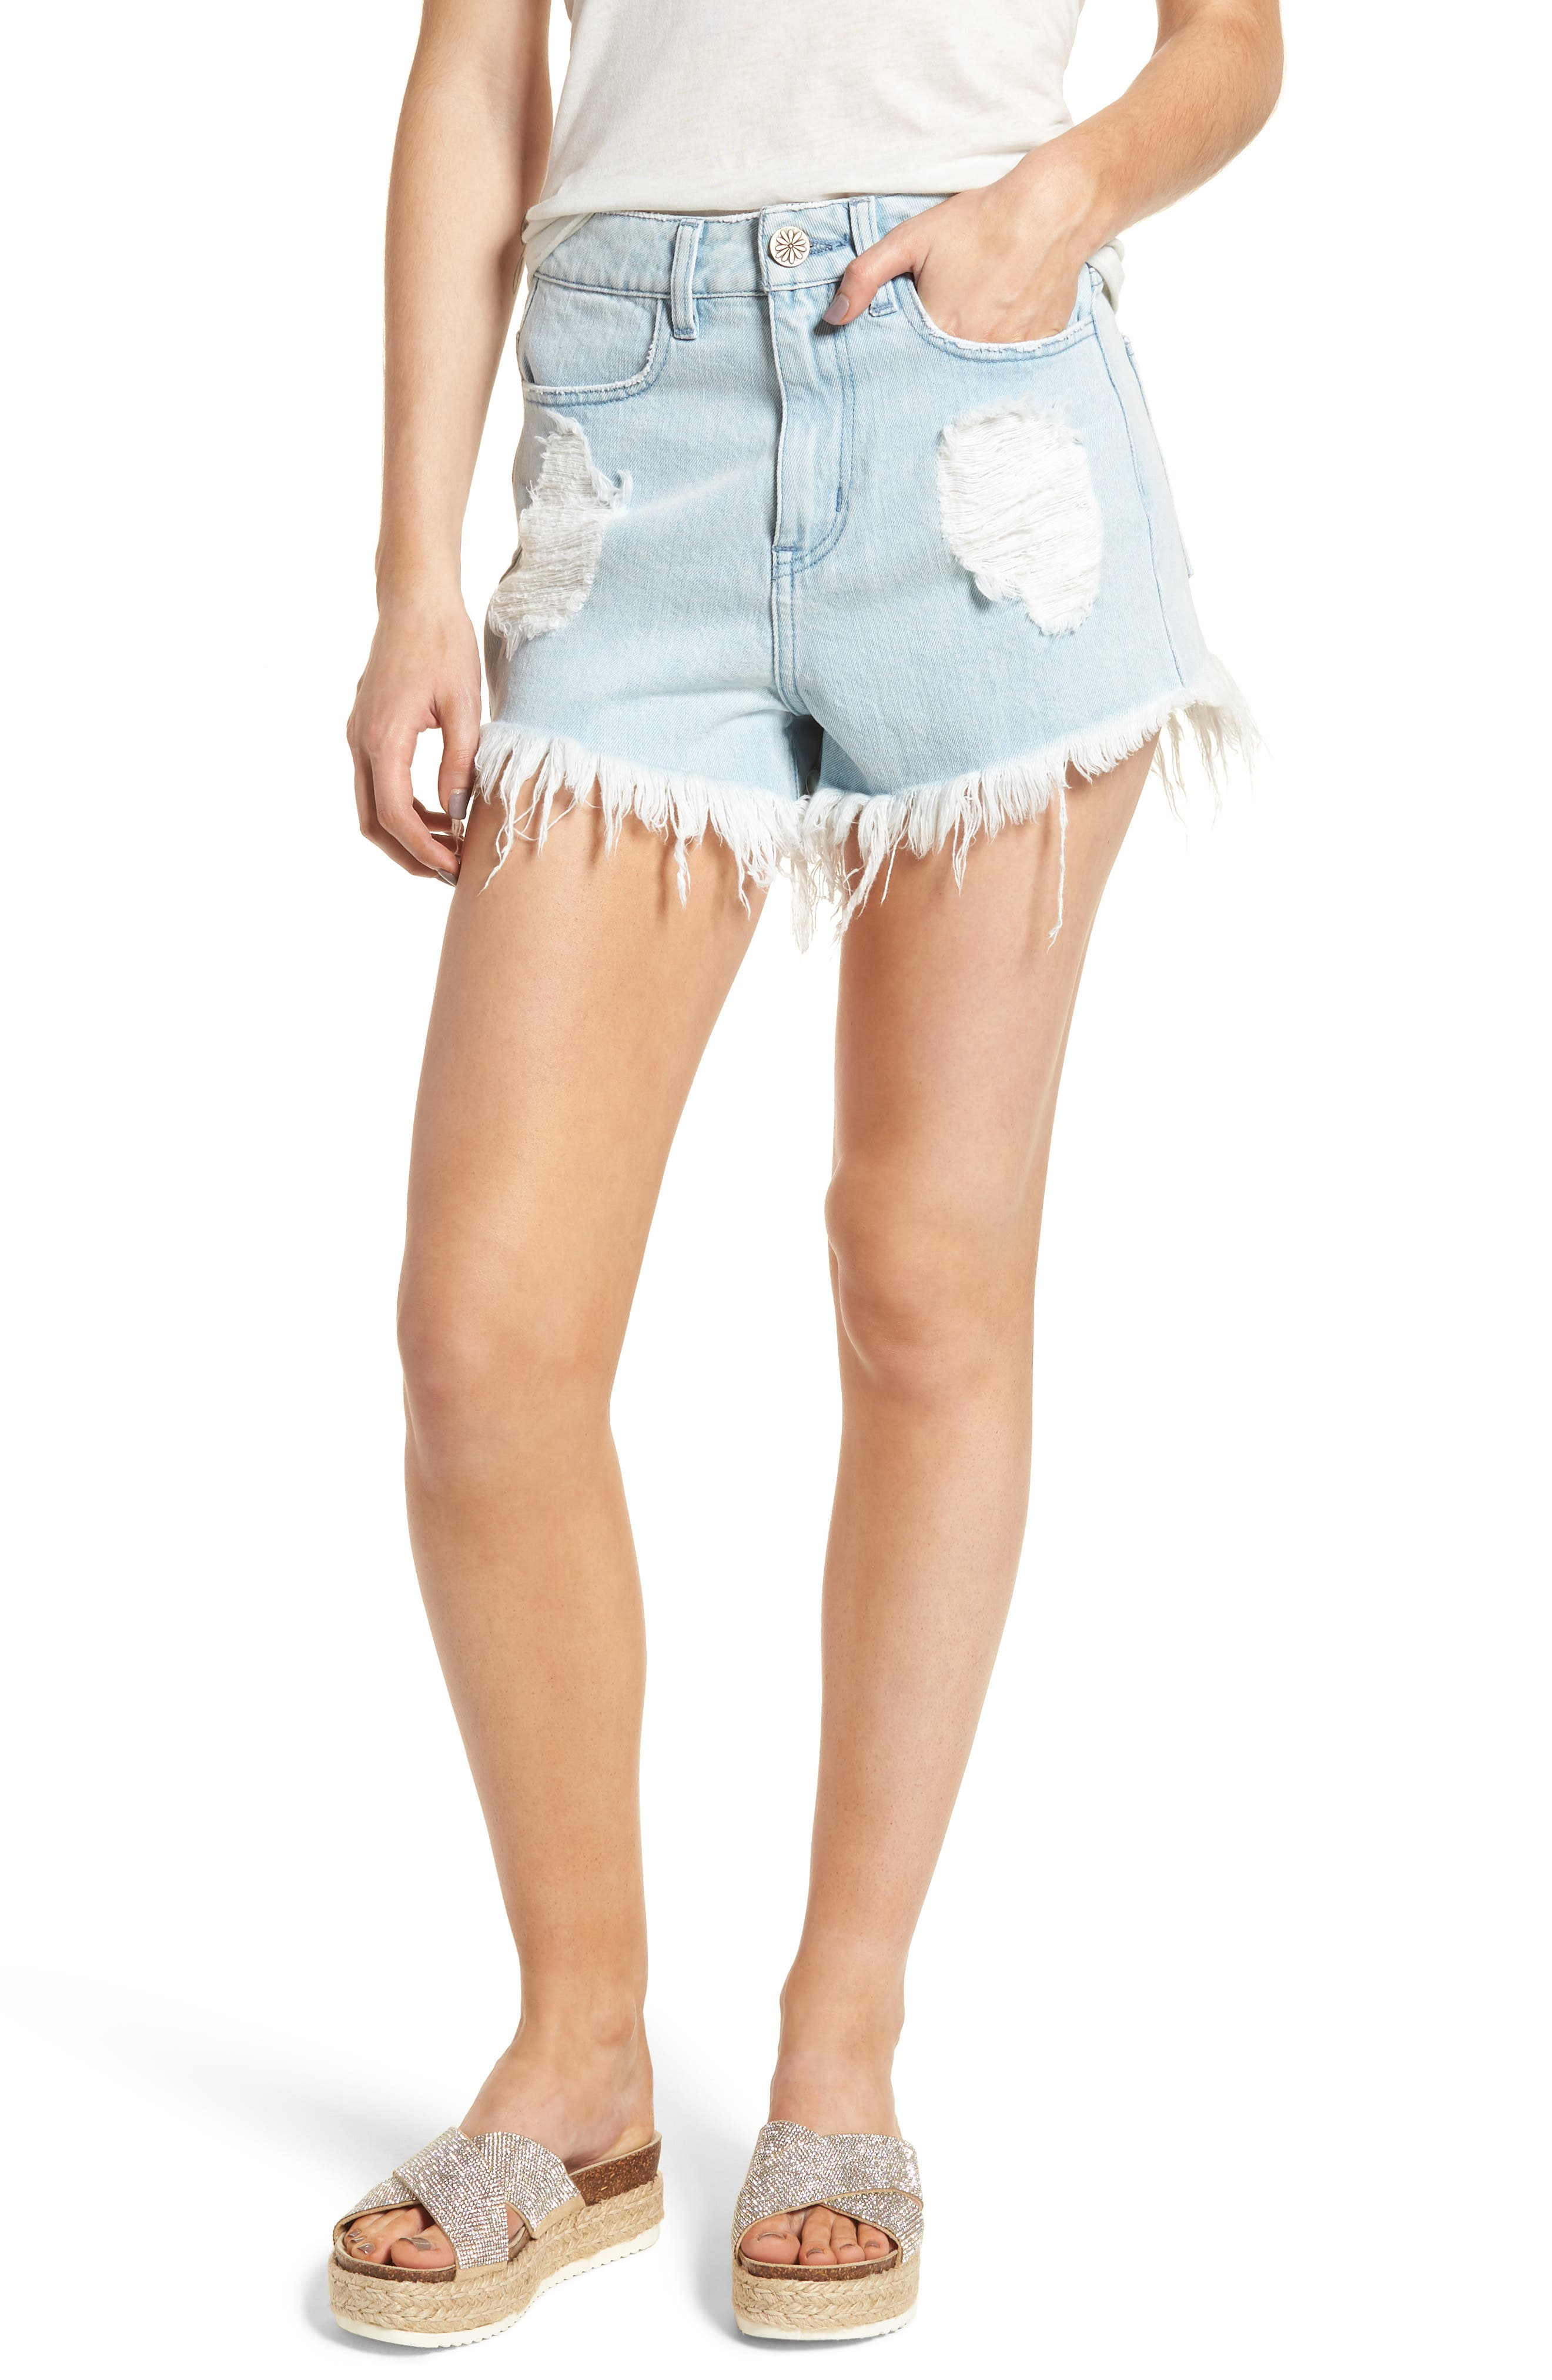 Wyoming High Waist Cutoff Denim Shorts,                         Main,                         color, WHITEWATER WITH CACTUS